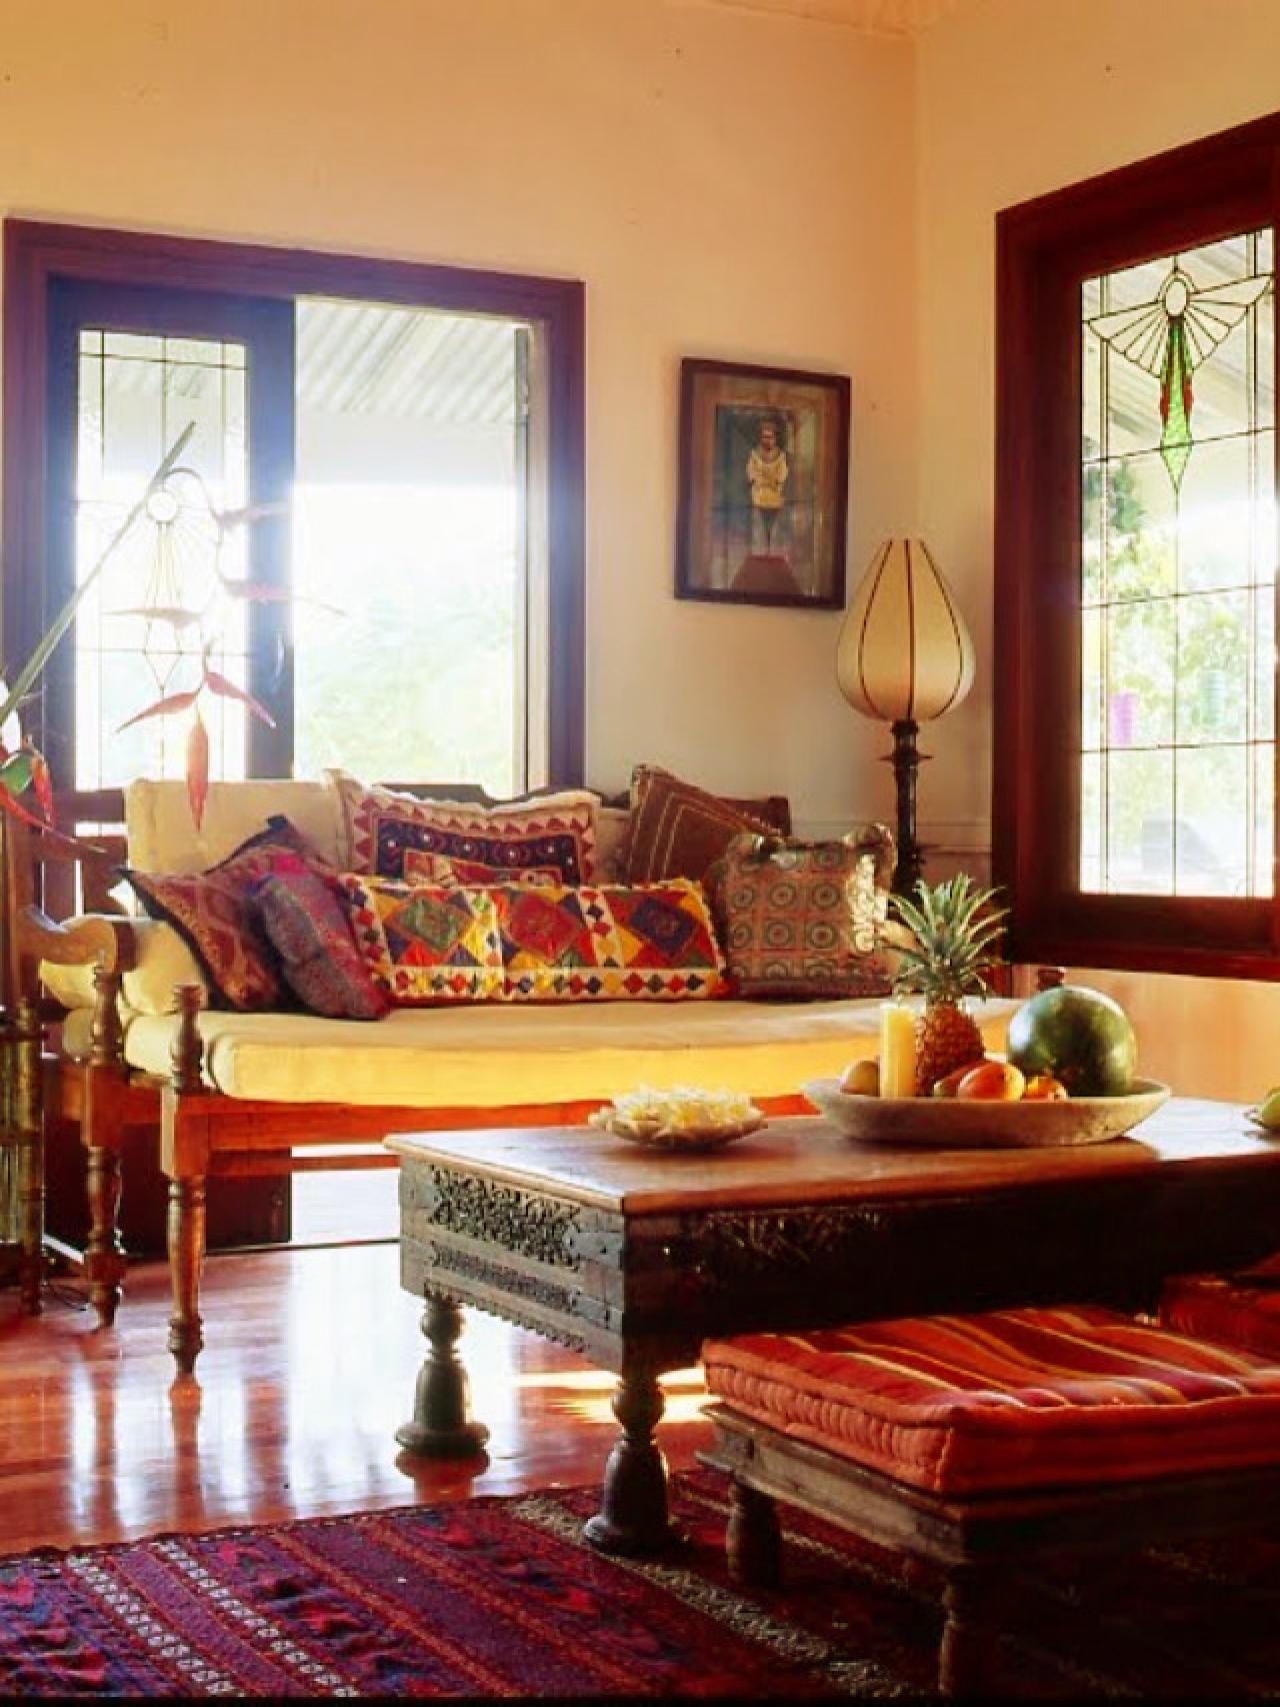 12 spaces inspired by india interior design styles and for Best house interior designs in india